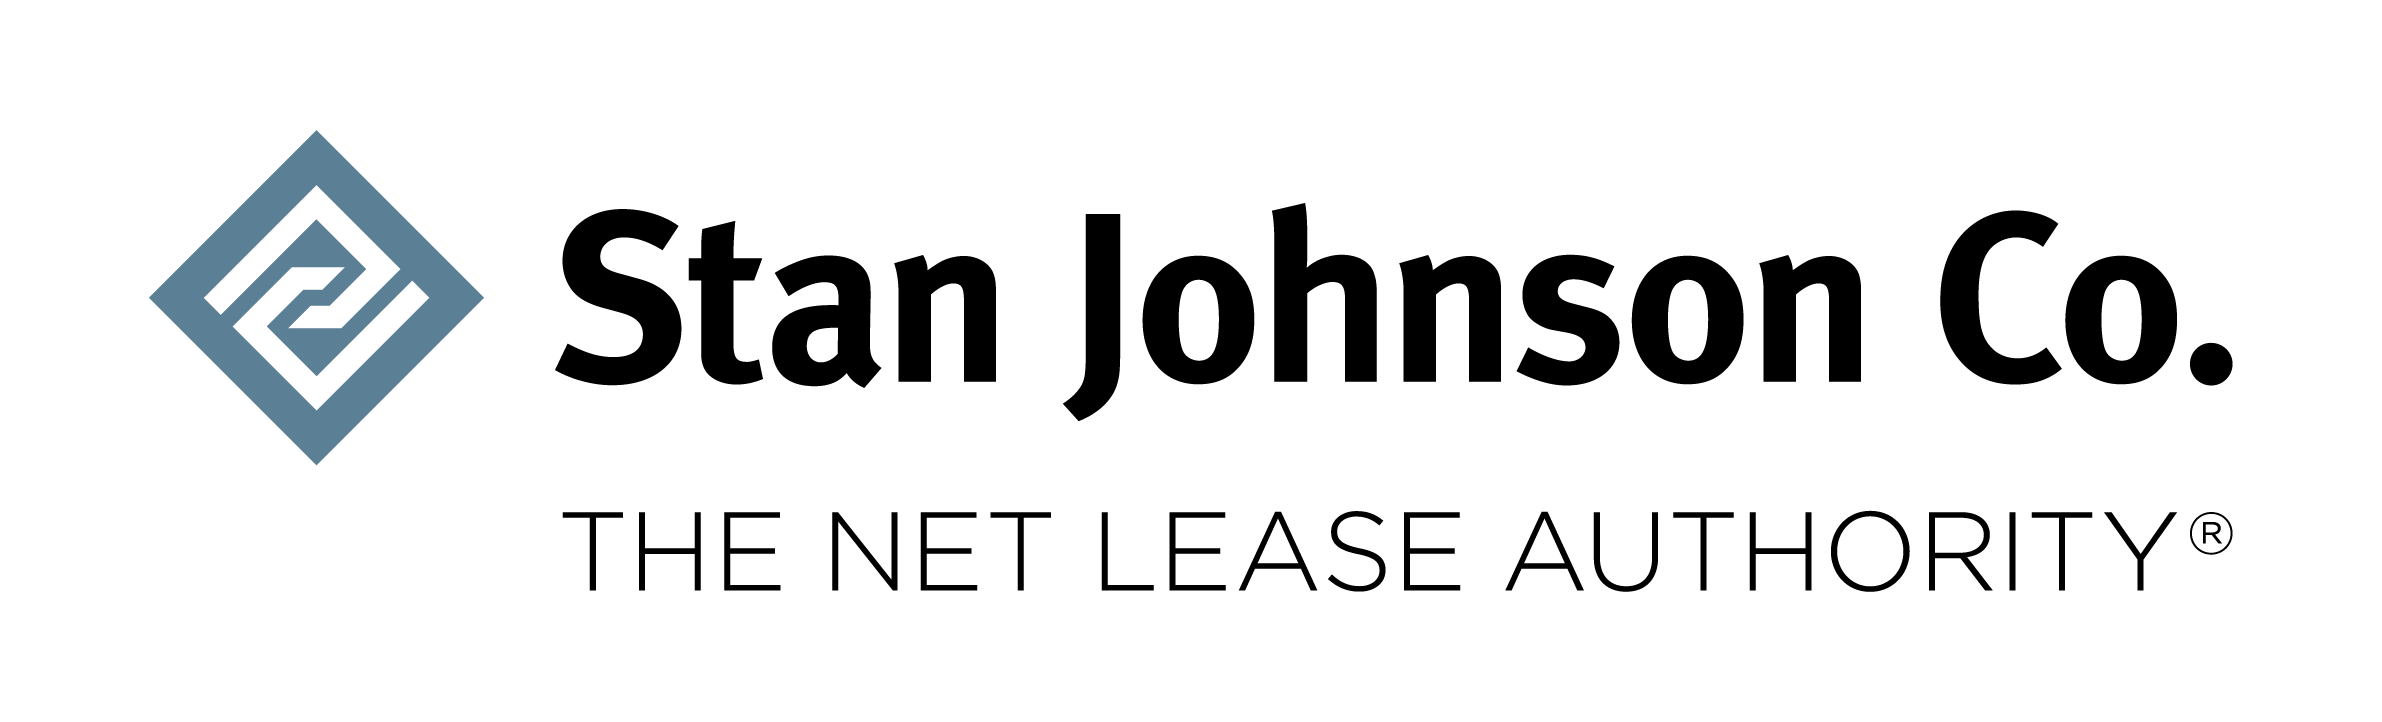 Stan Johnson Company Company Logo